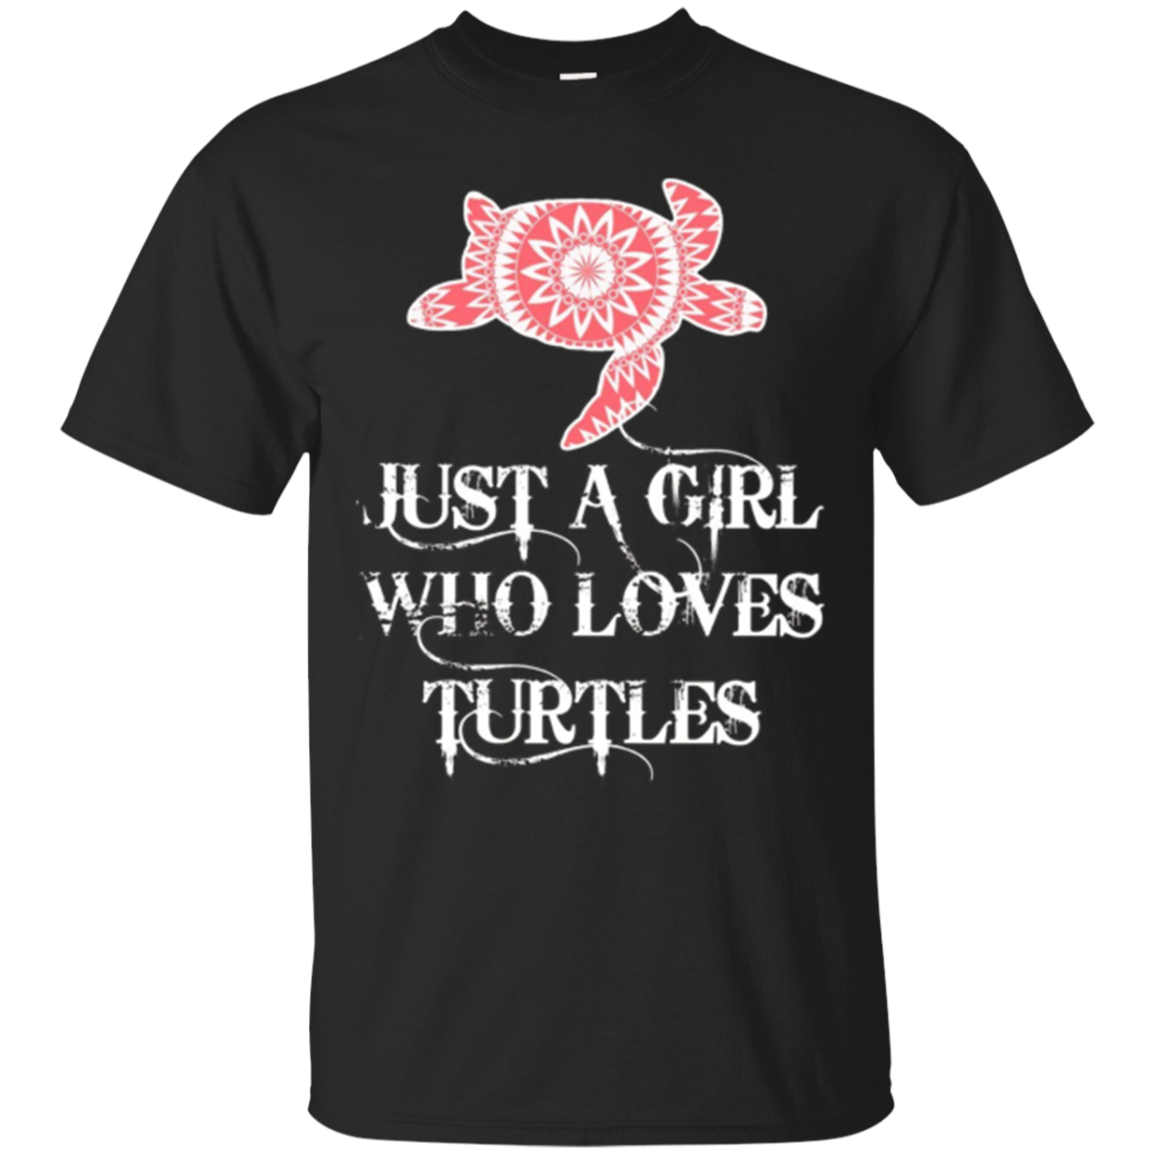 Sea Turtle Gift Tee Just A Girl Who Loves Turtles T-shirt